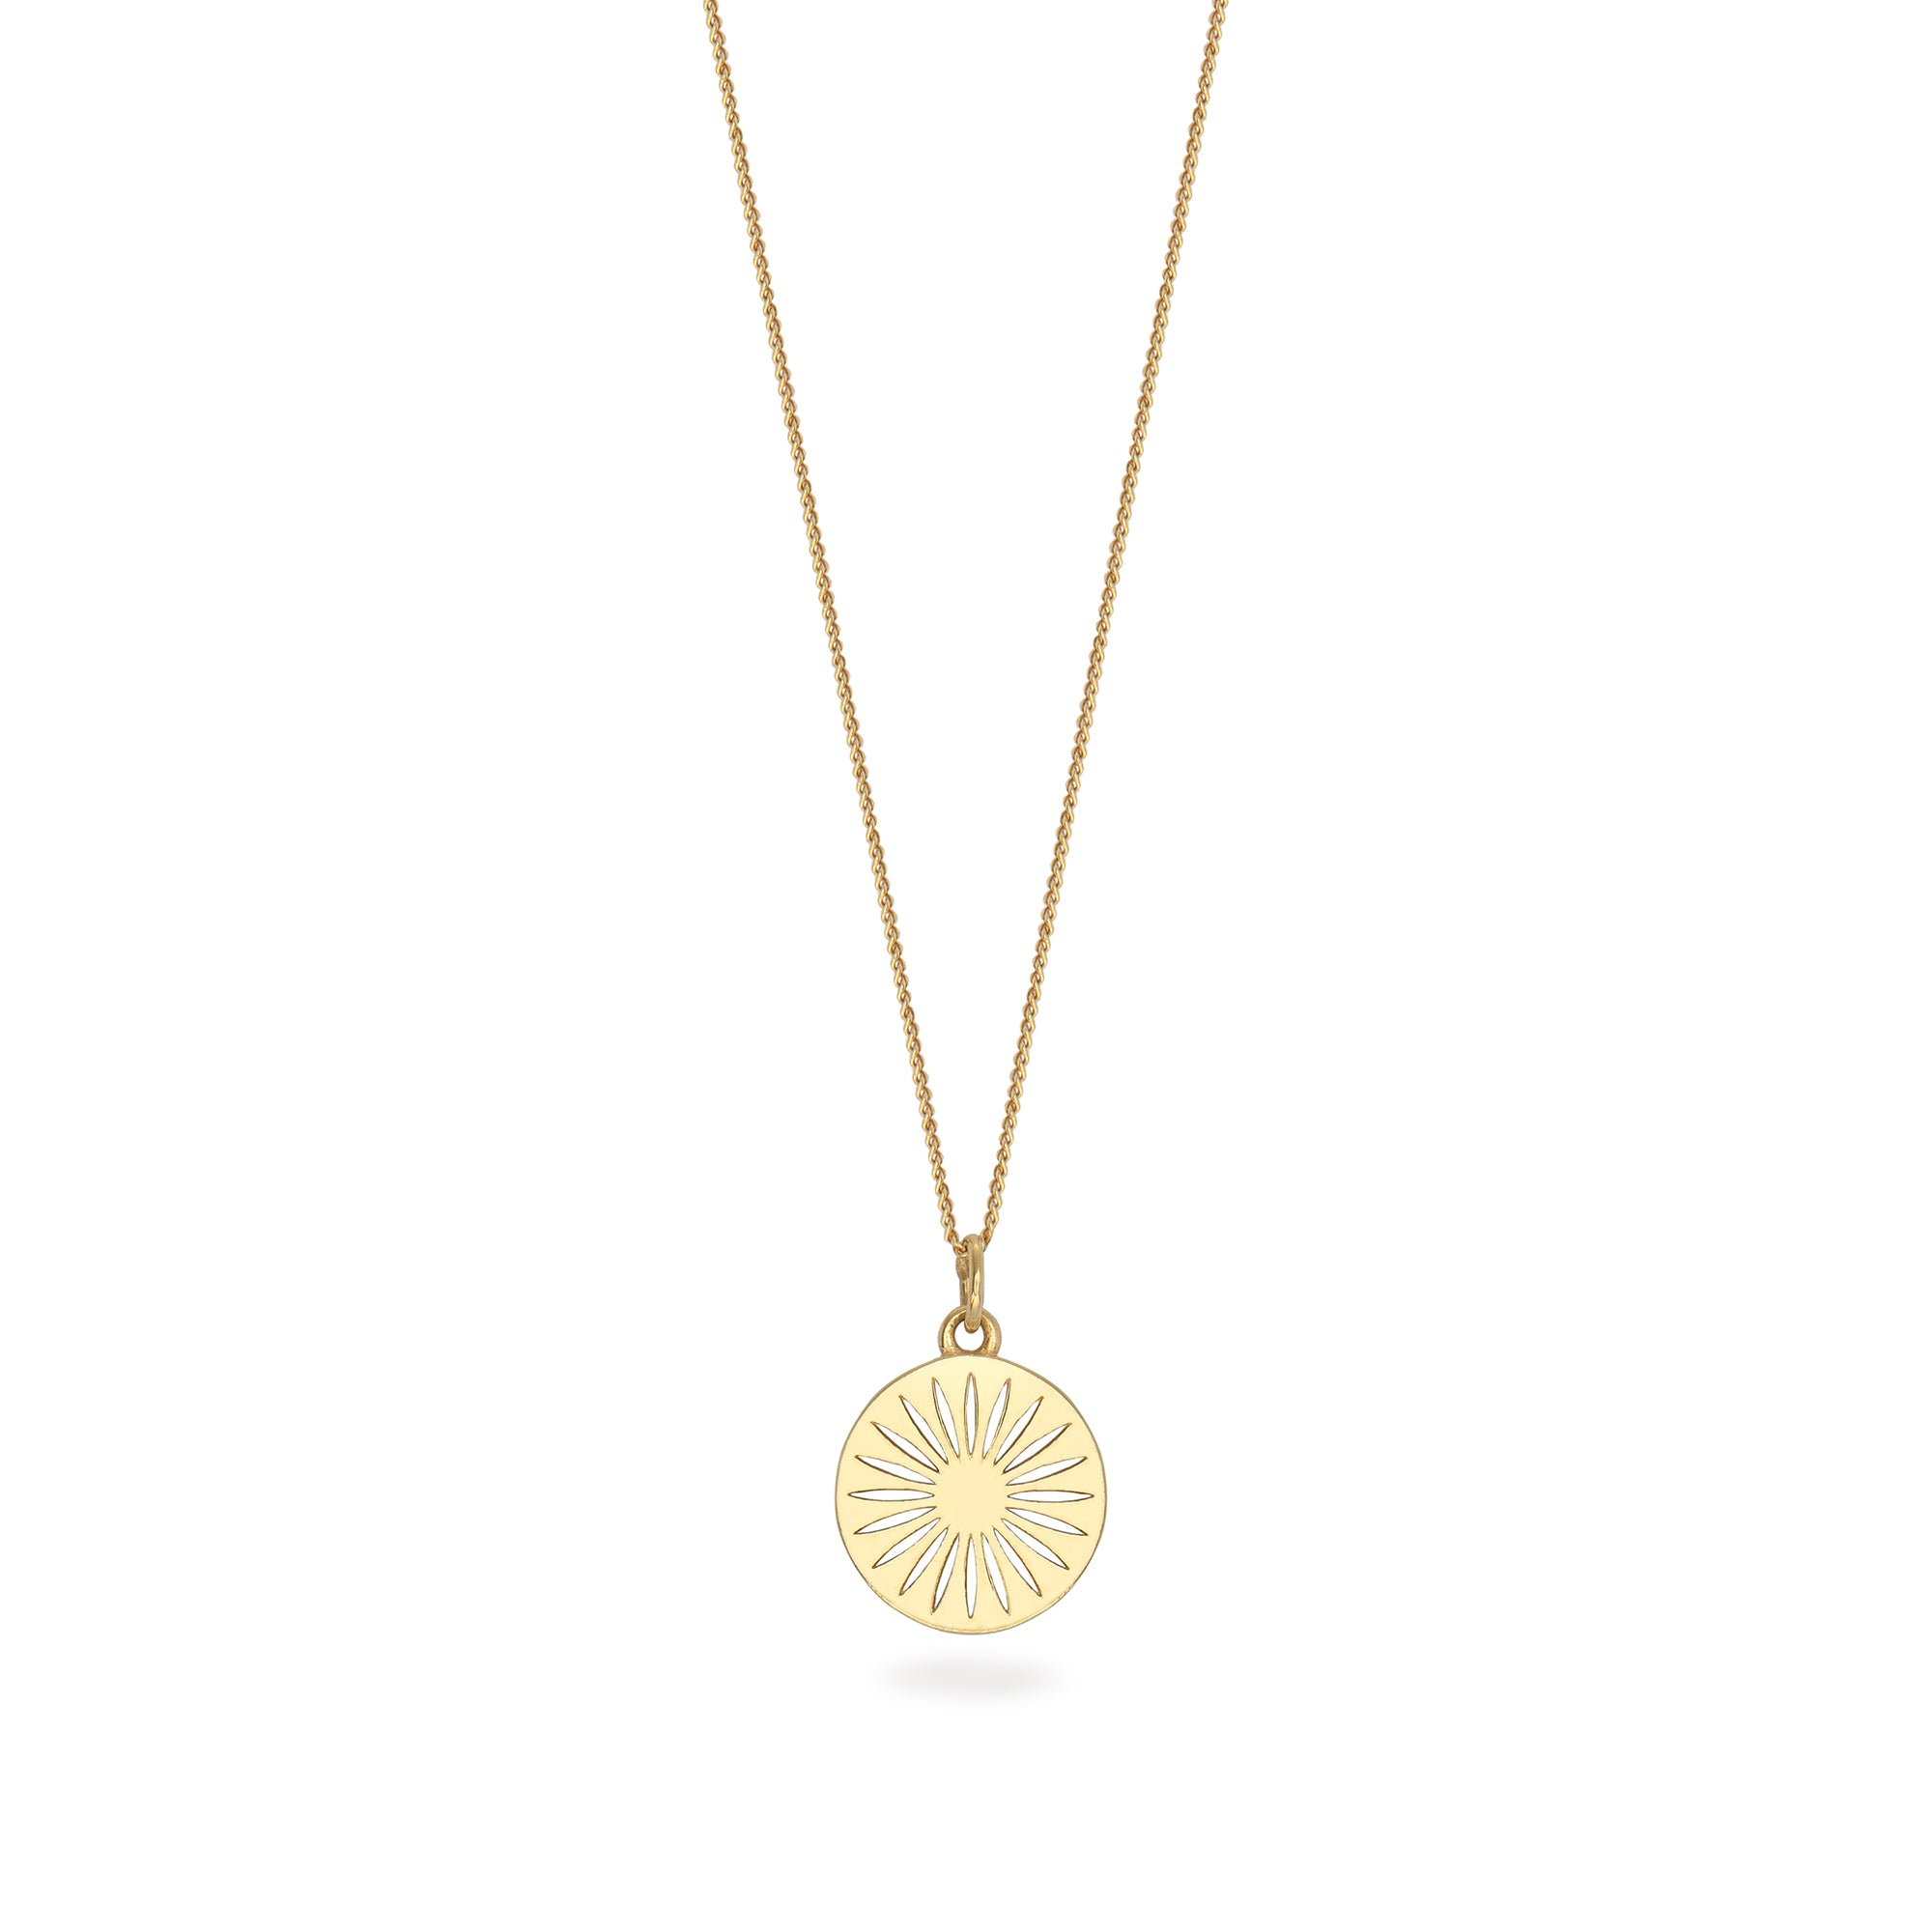 Daisy Token Charm Necklace Gold Vermeil